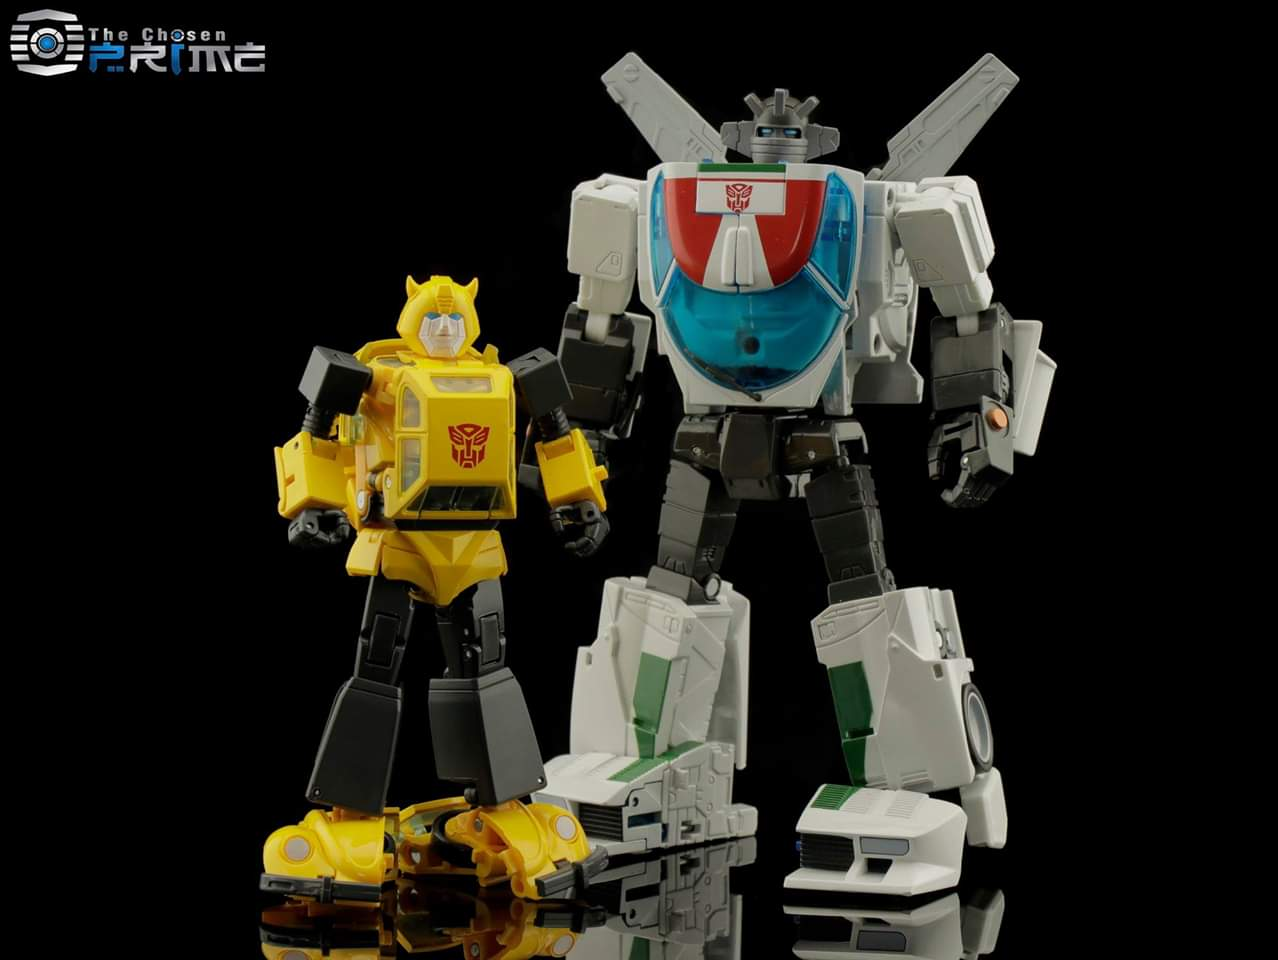 [Masterpiece] MP-45 Bumblebee/Bourdon v2.0 - Page 2 VBZHJ8p1_o